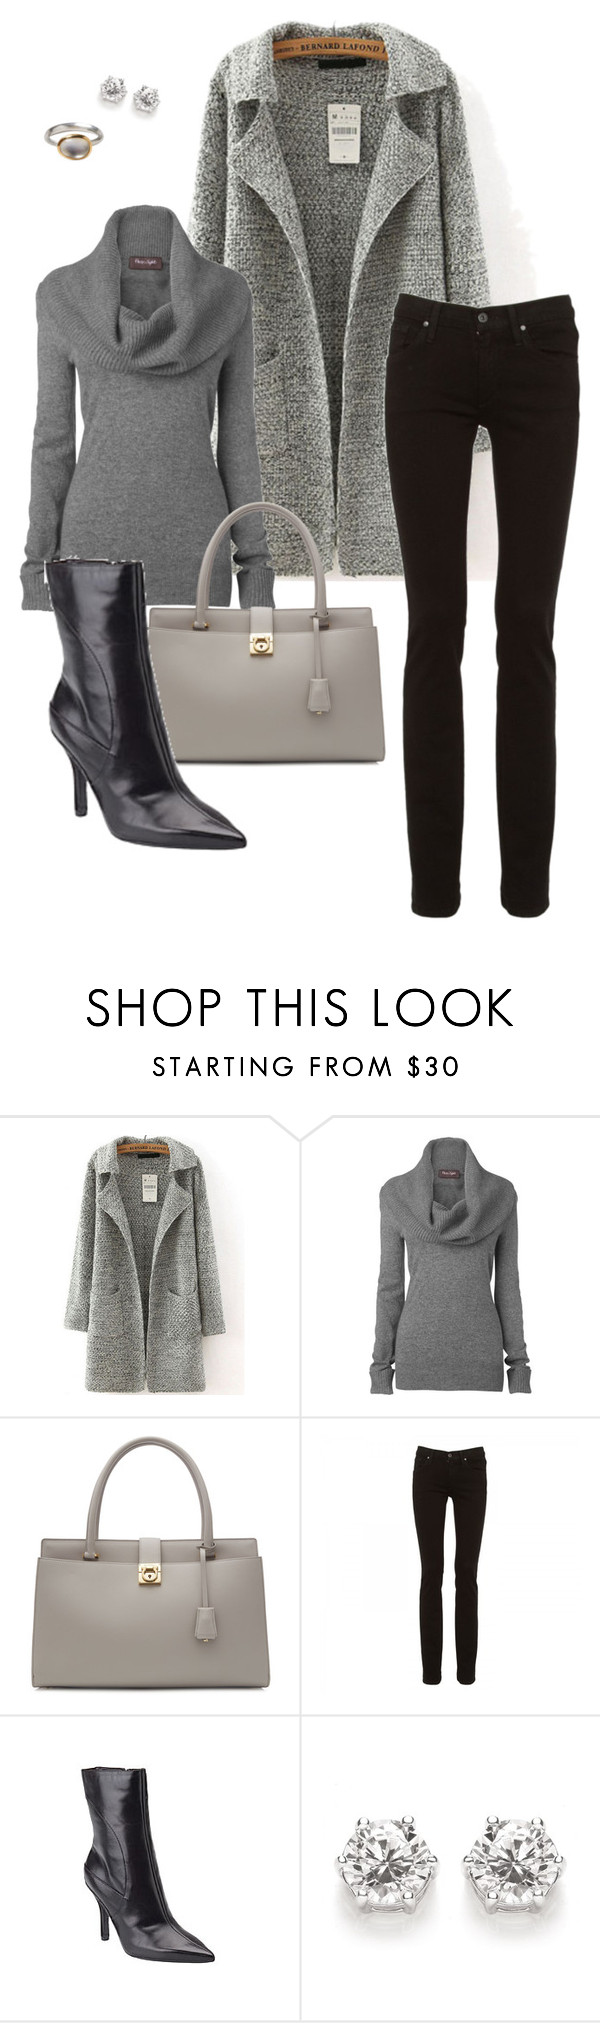 """""""Grey/Gray"""" by jjill ❤ liked on Polyvore featuring moda, Phase Eight, Salvatore Ferragamo, James Jeans e Nine West"""